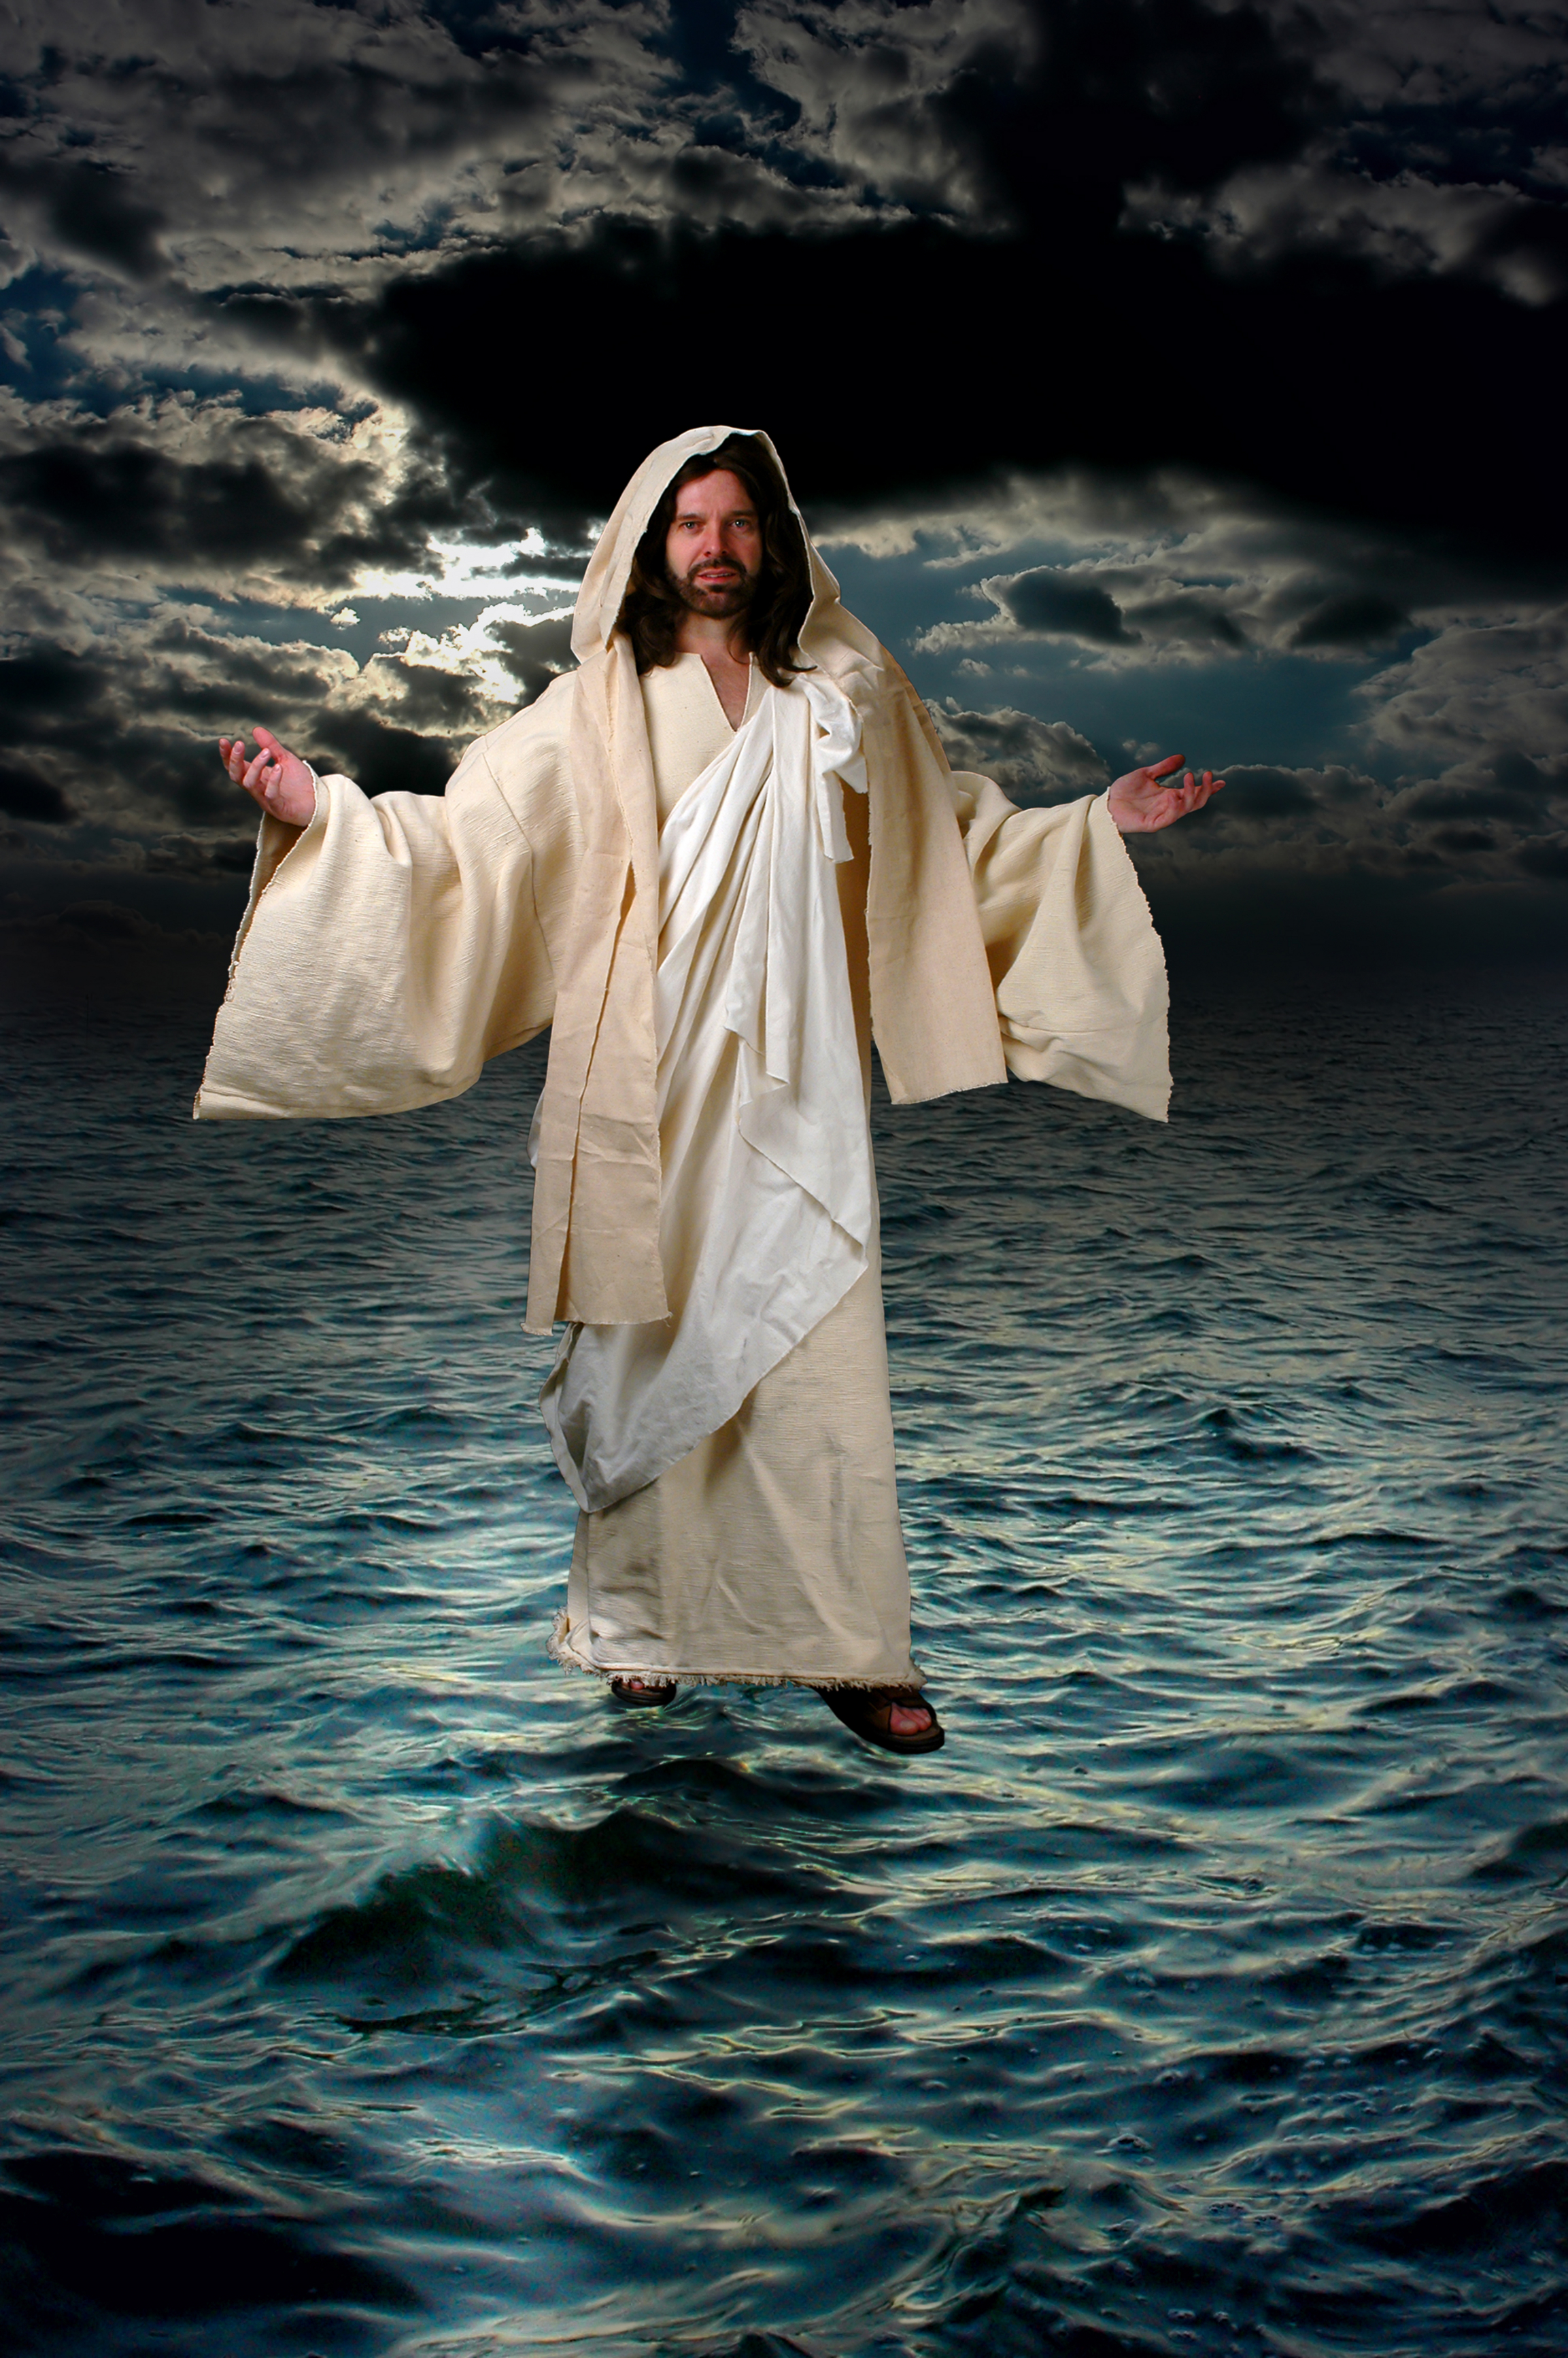 jesus walking on water The baptism of jesus is described in the gospels of matthew, mark and luke  john's gospel does not directly describe jesus' baptism  have invented an  episode in which jesus changes his mind and comes to accept someone else's  plan.